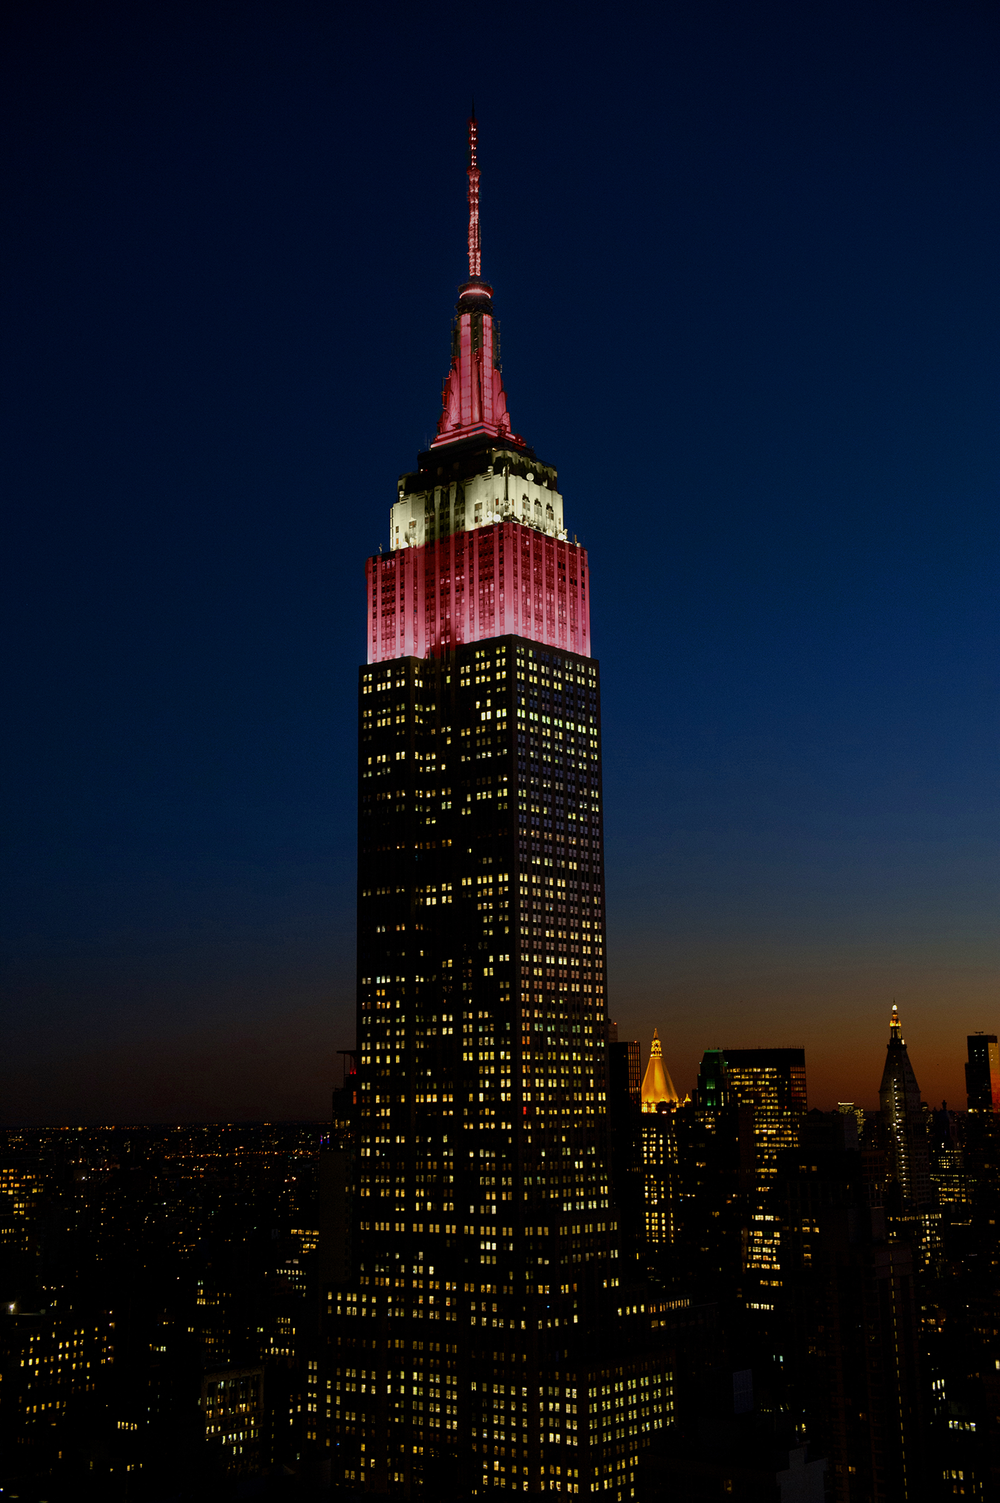 NYC's iconic Empire State Building illuminated in the colors of Latvia's flag.